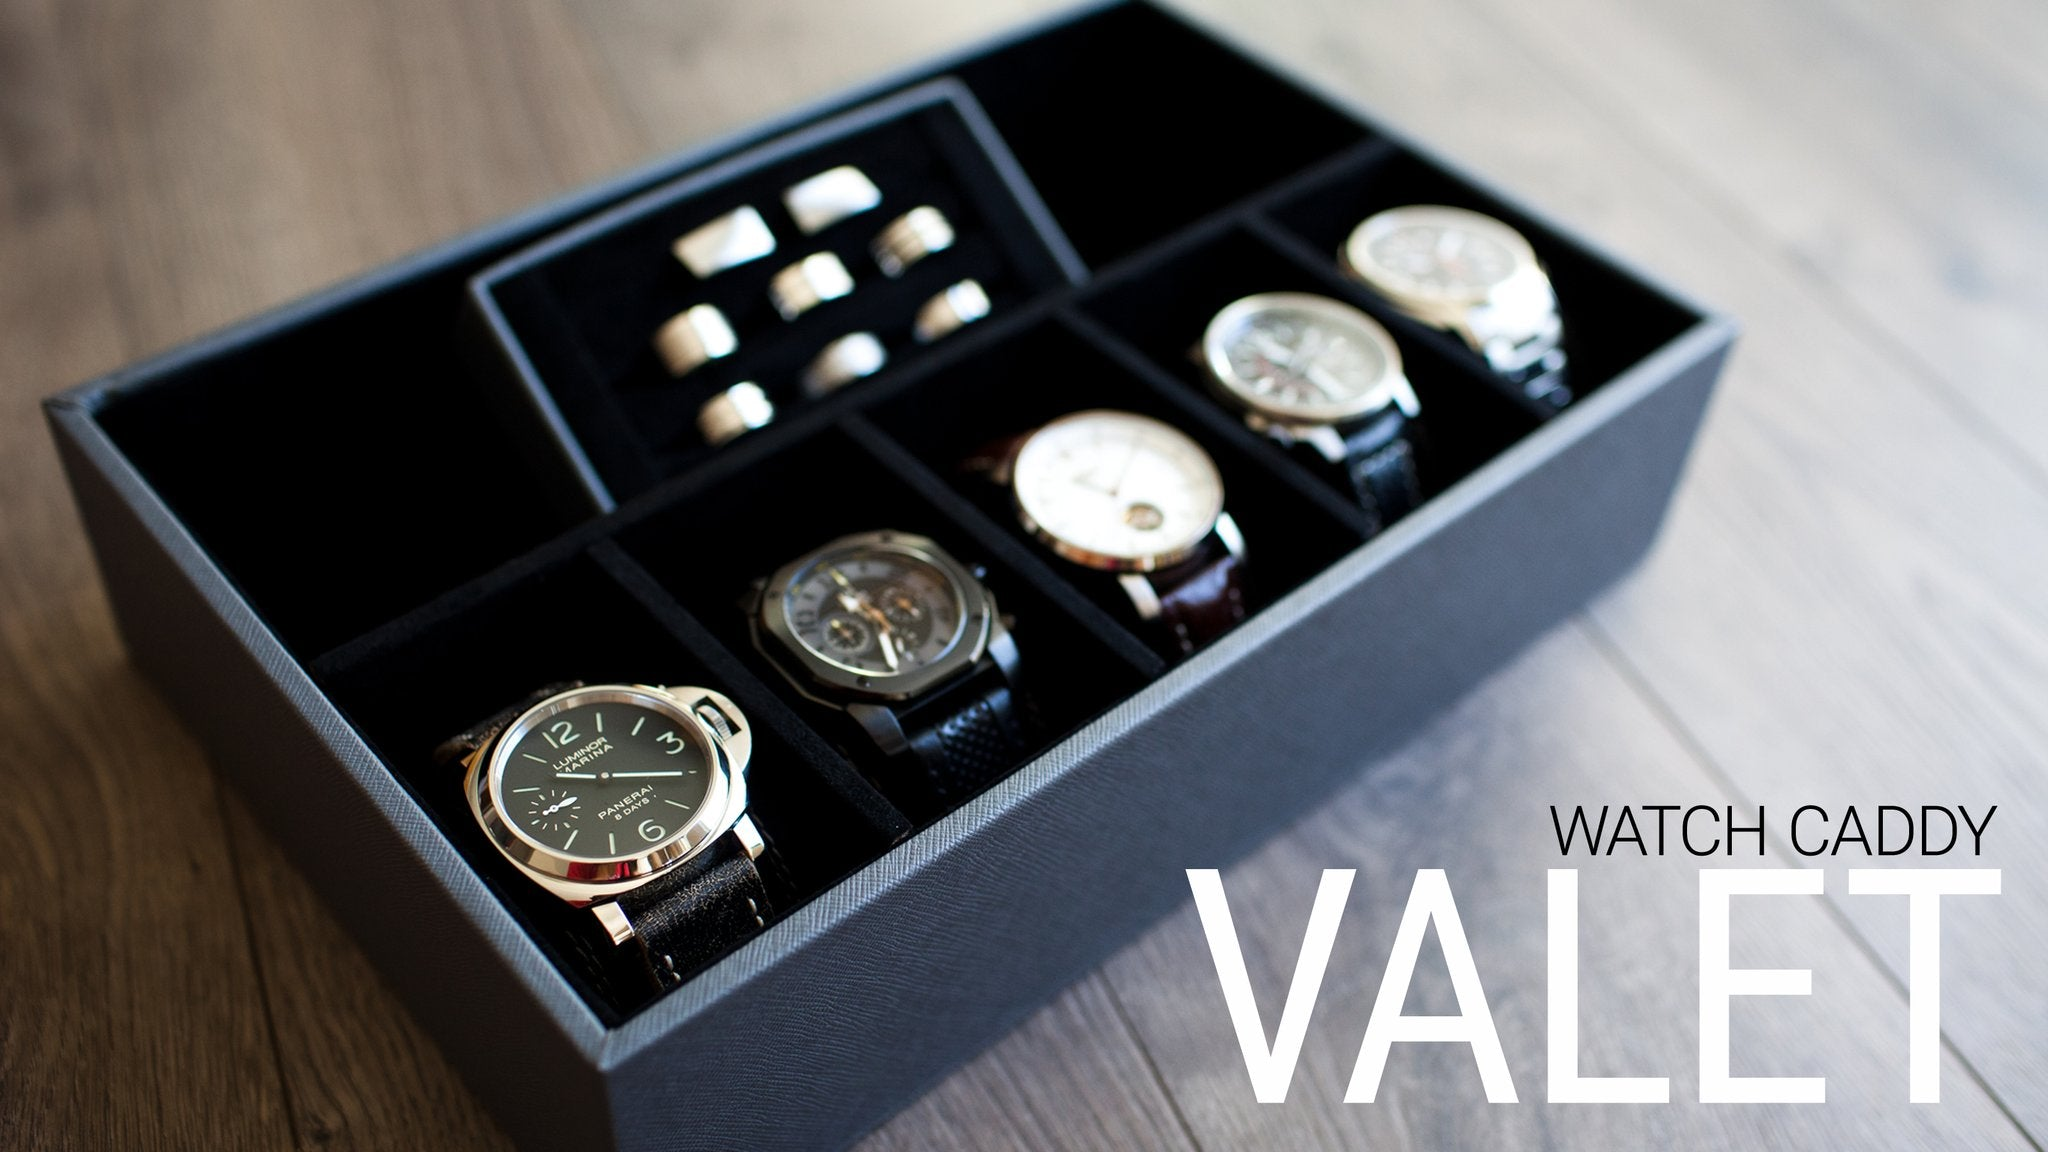 Watch Caddy Valet Tray Watch Box